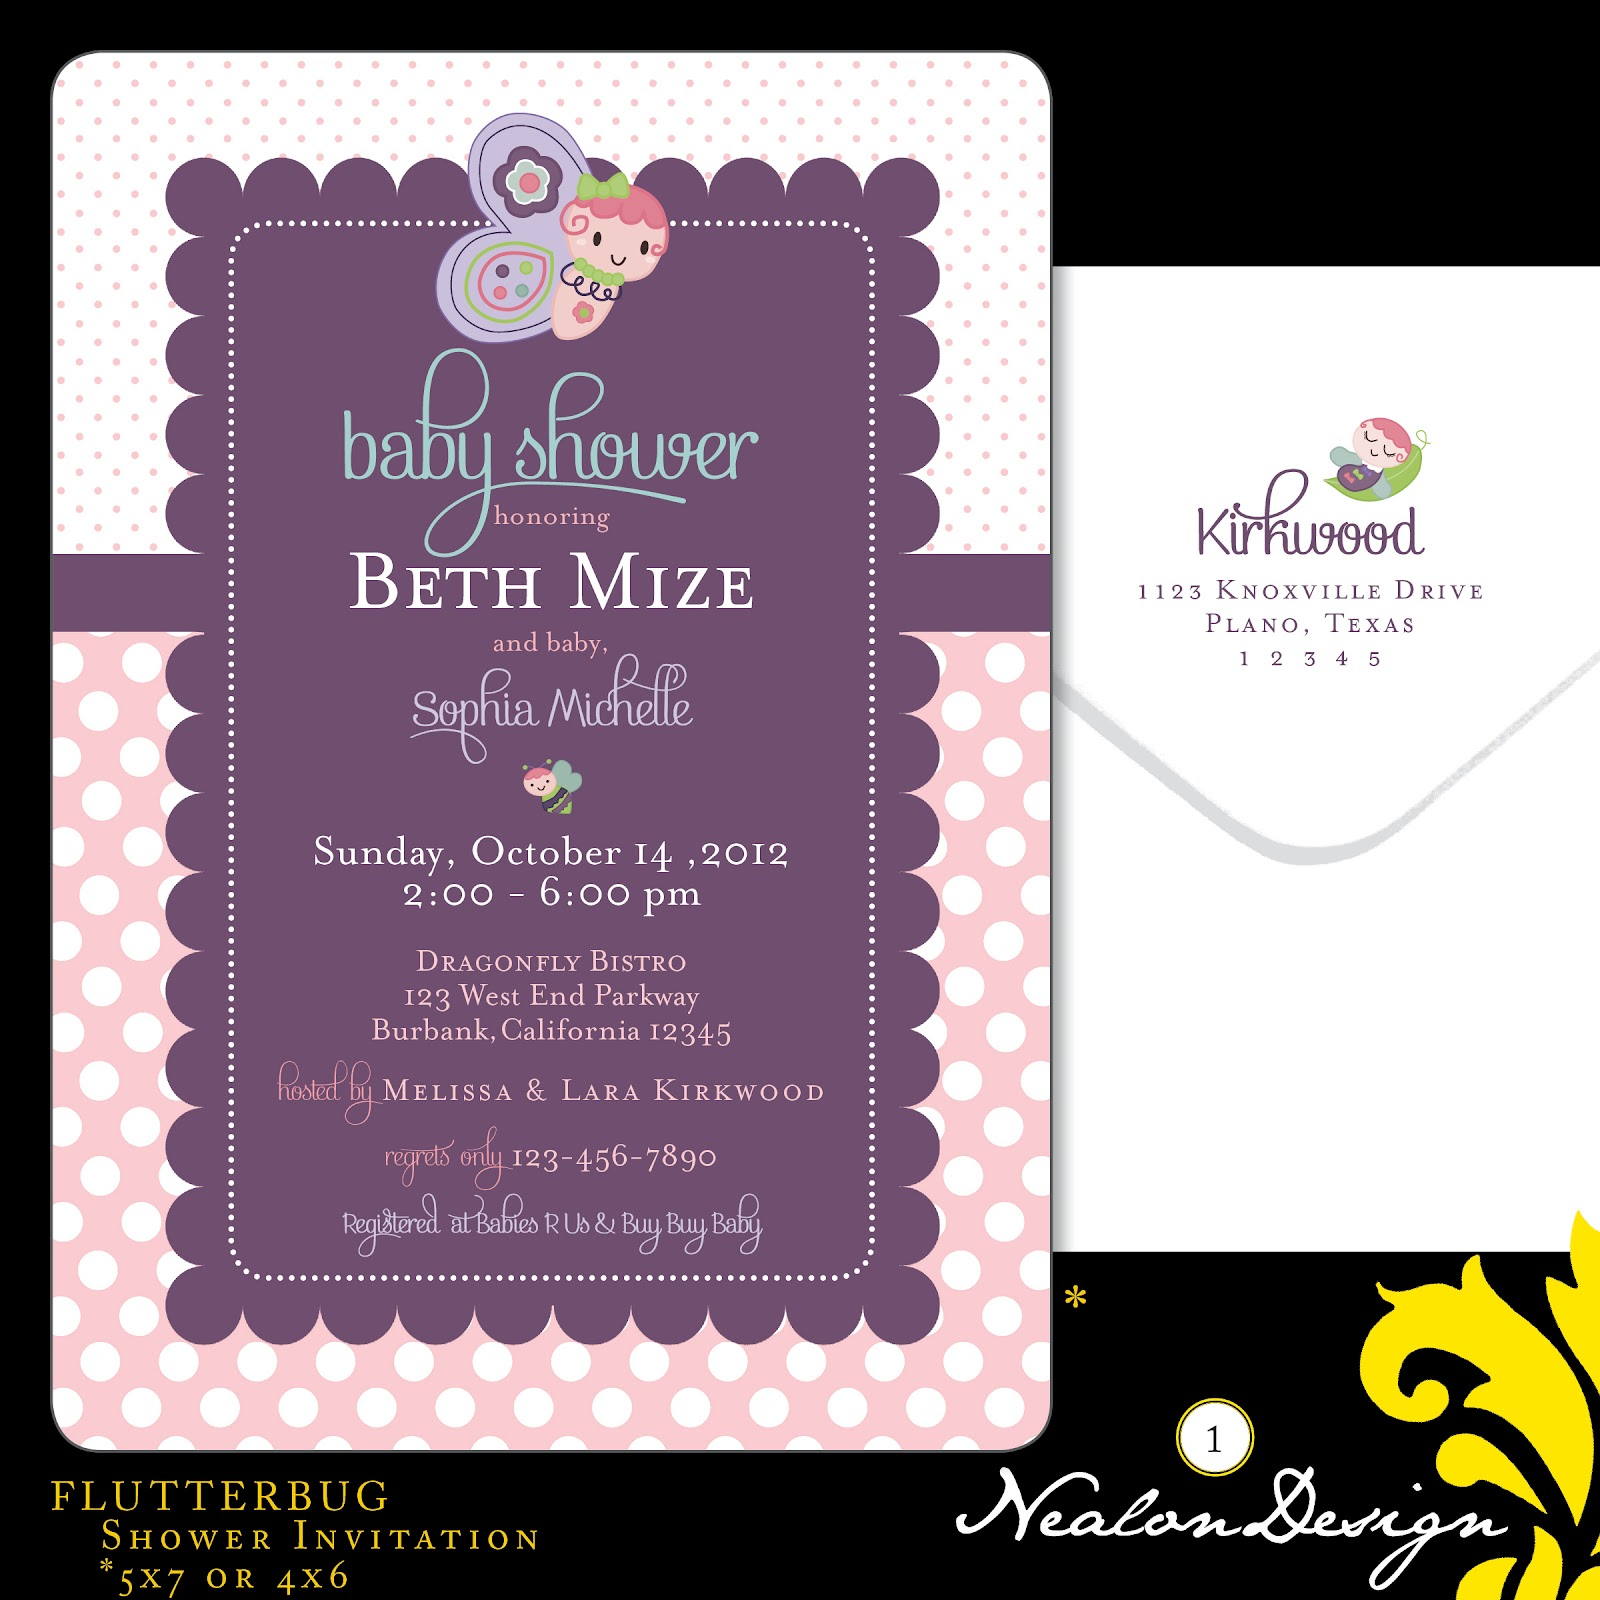 Nealon Design: Flutterbug BABY SHOWER Invitations